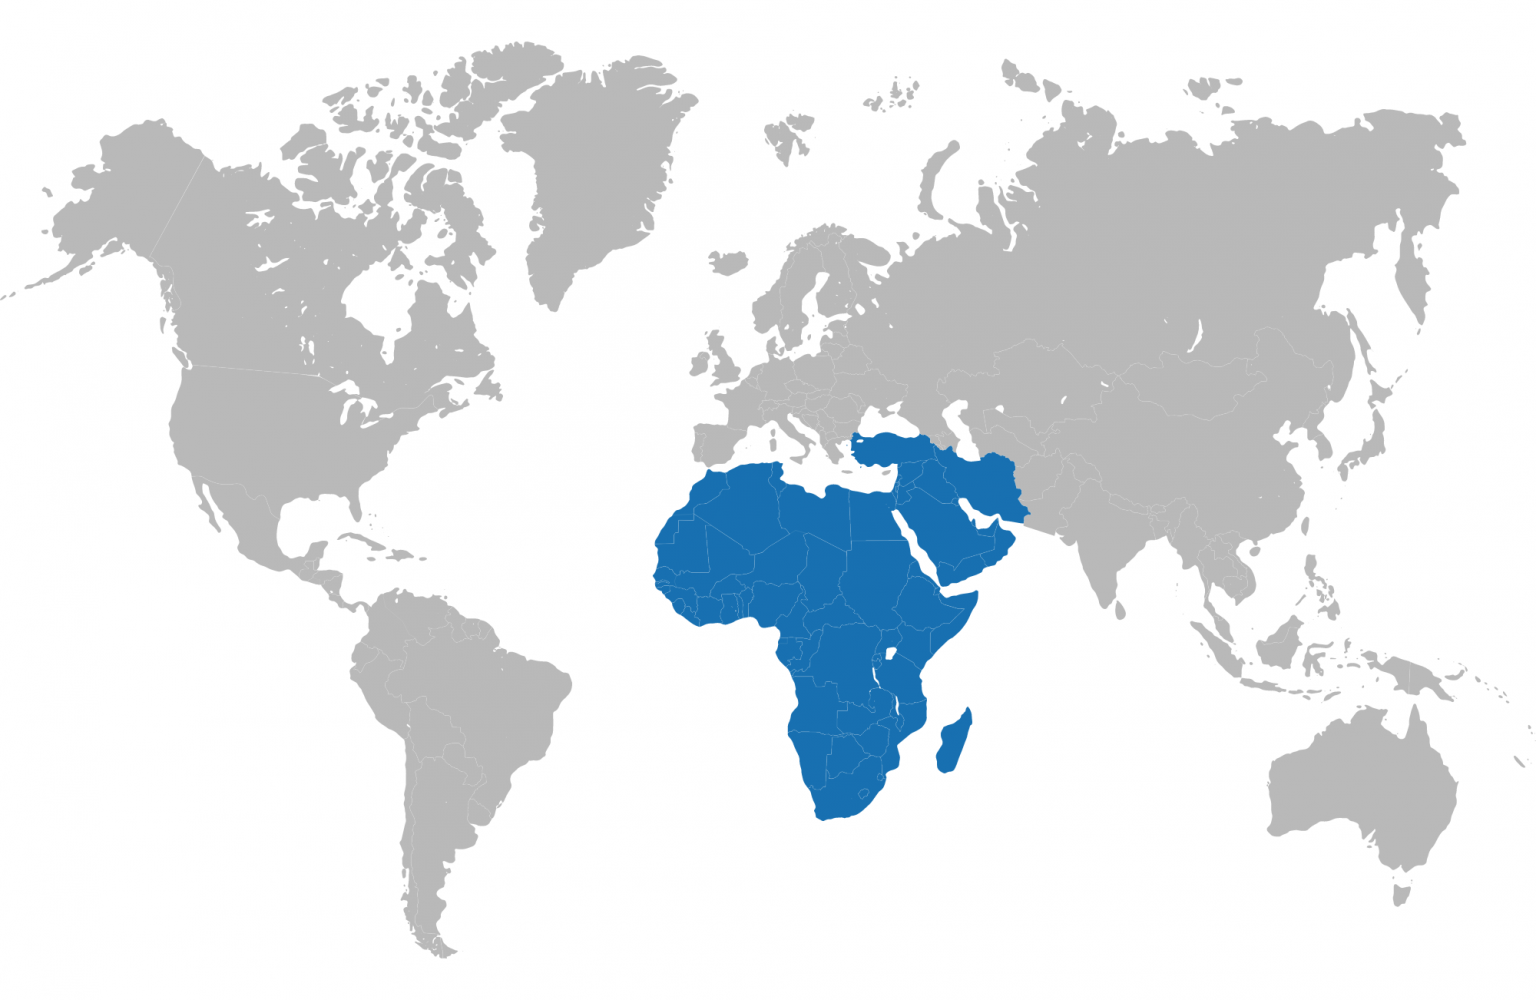 Middle east - Africa